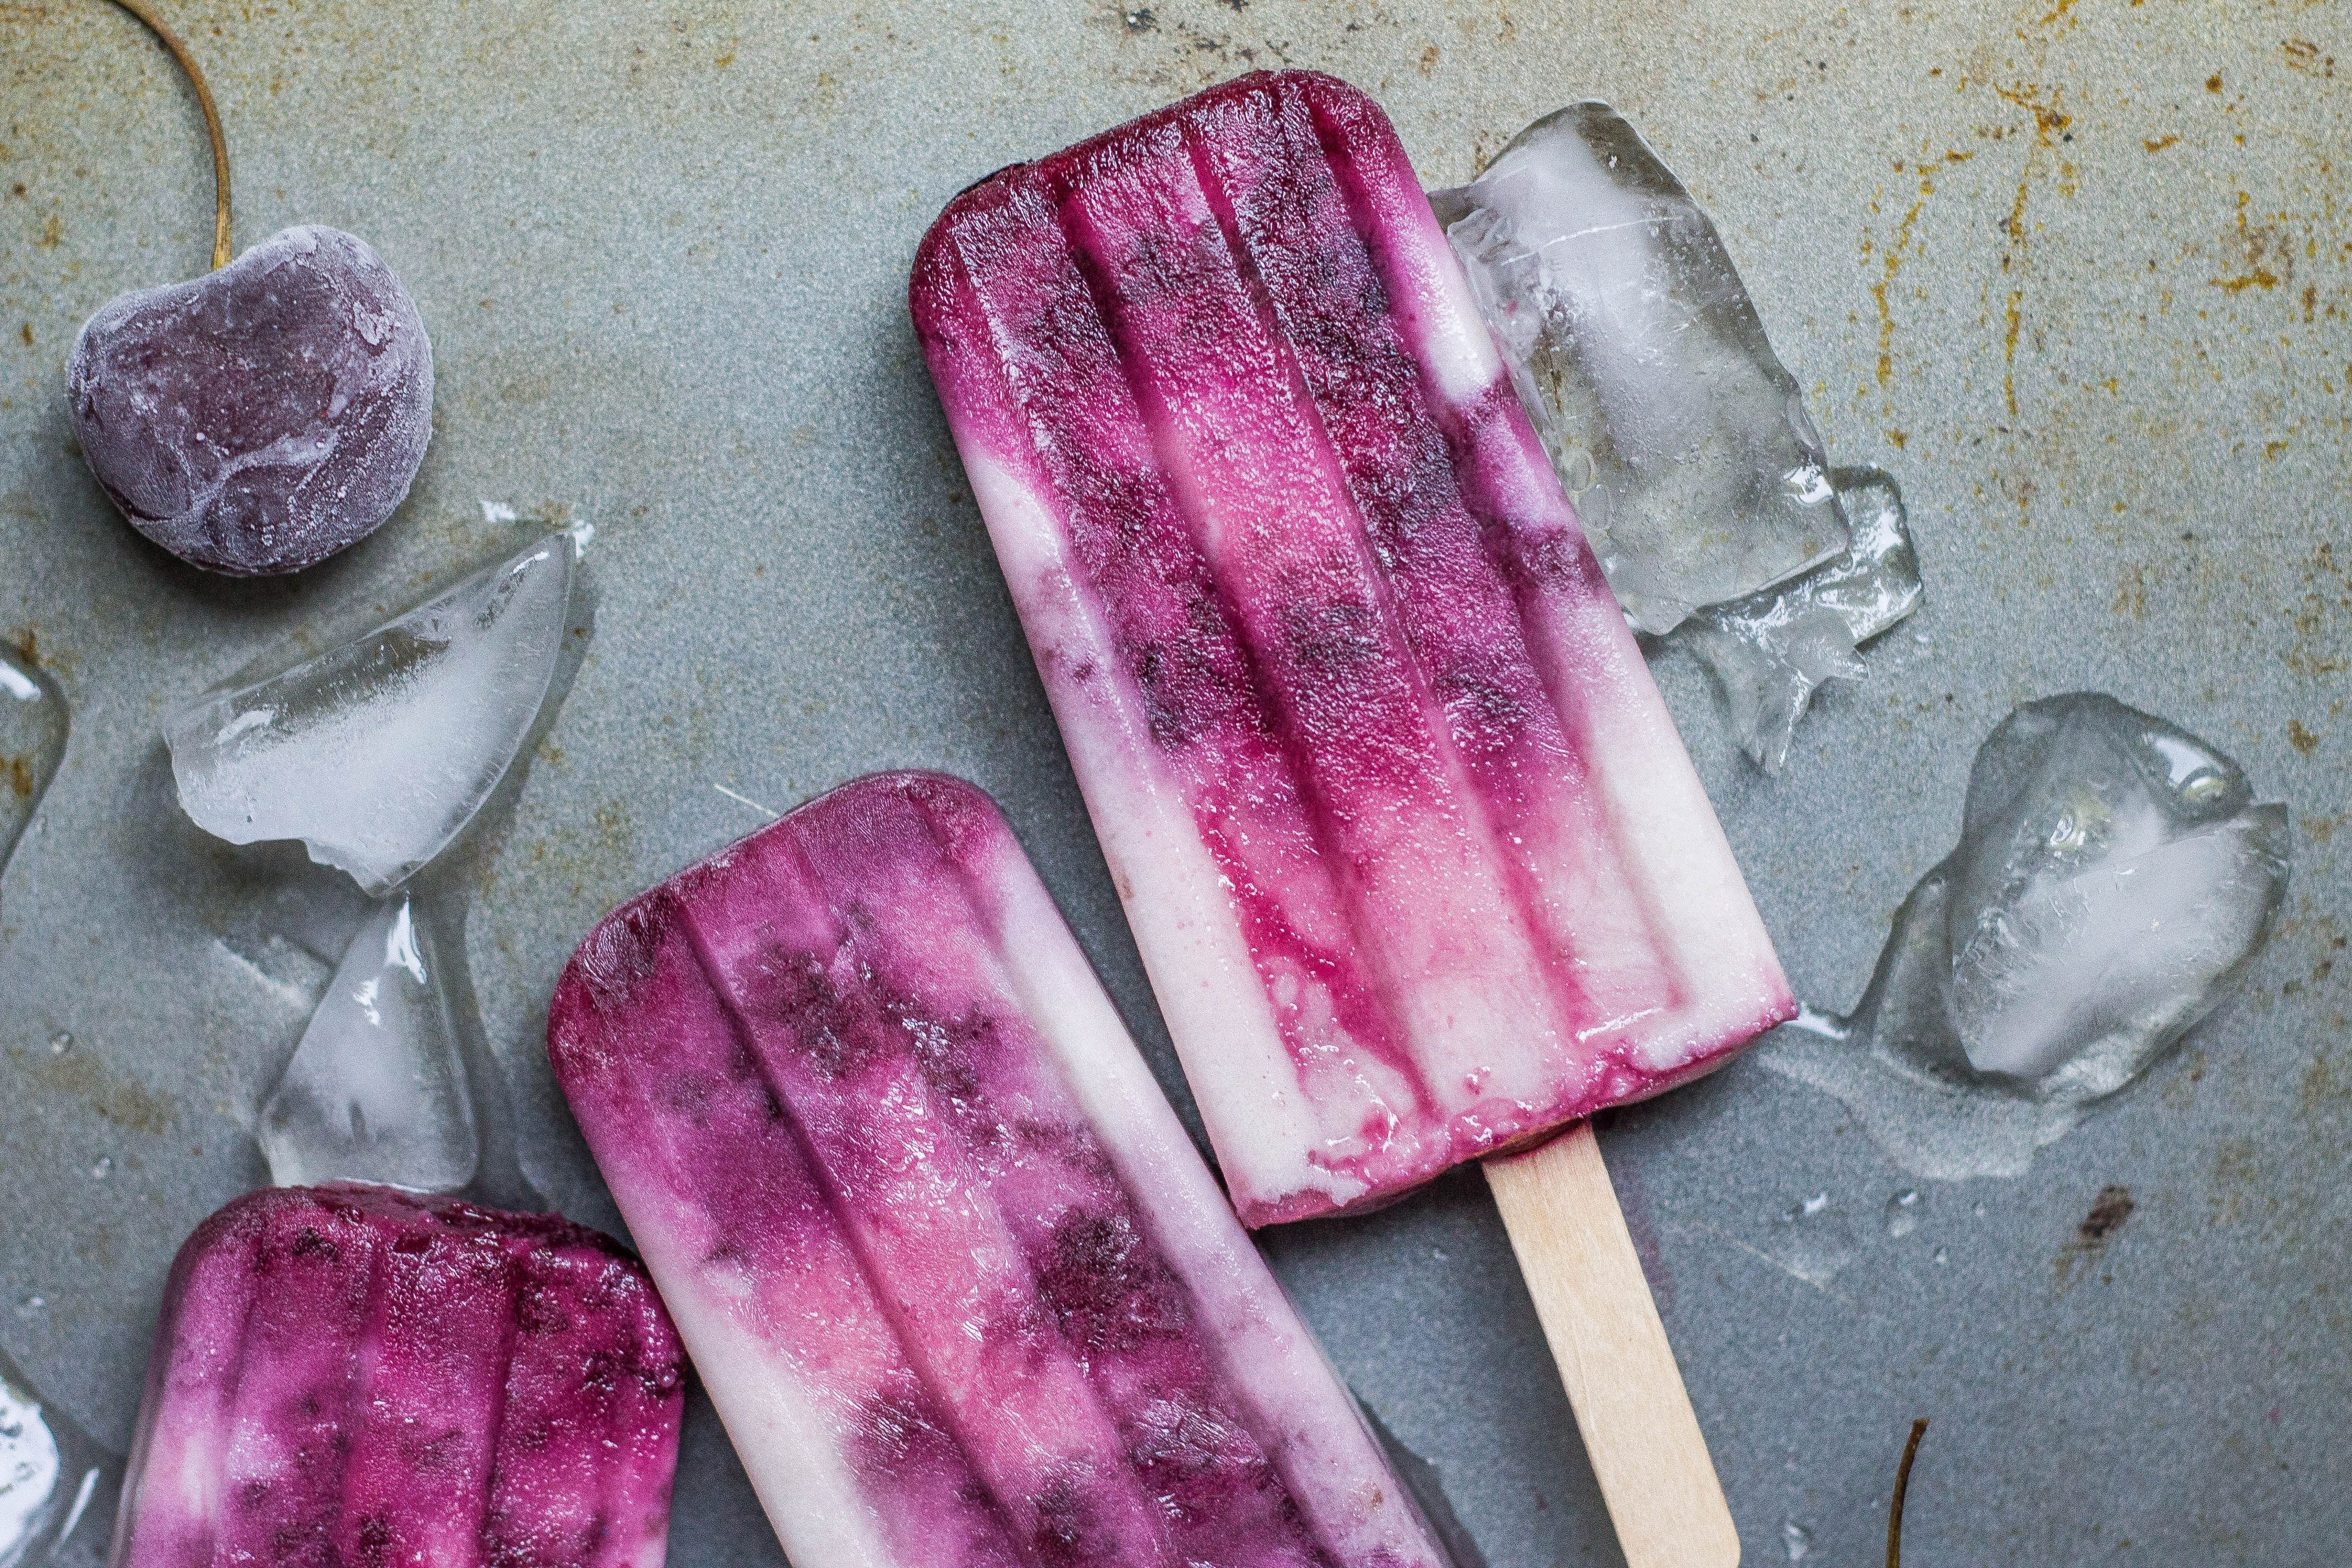 Three Queen Garnet yoghurt swirl popsicles sitting on a table, with glass and frozen berries alongside